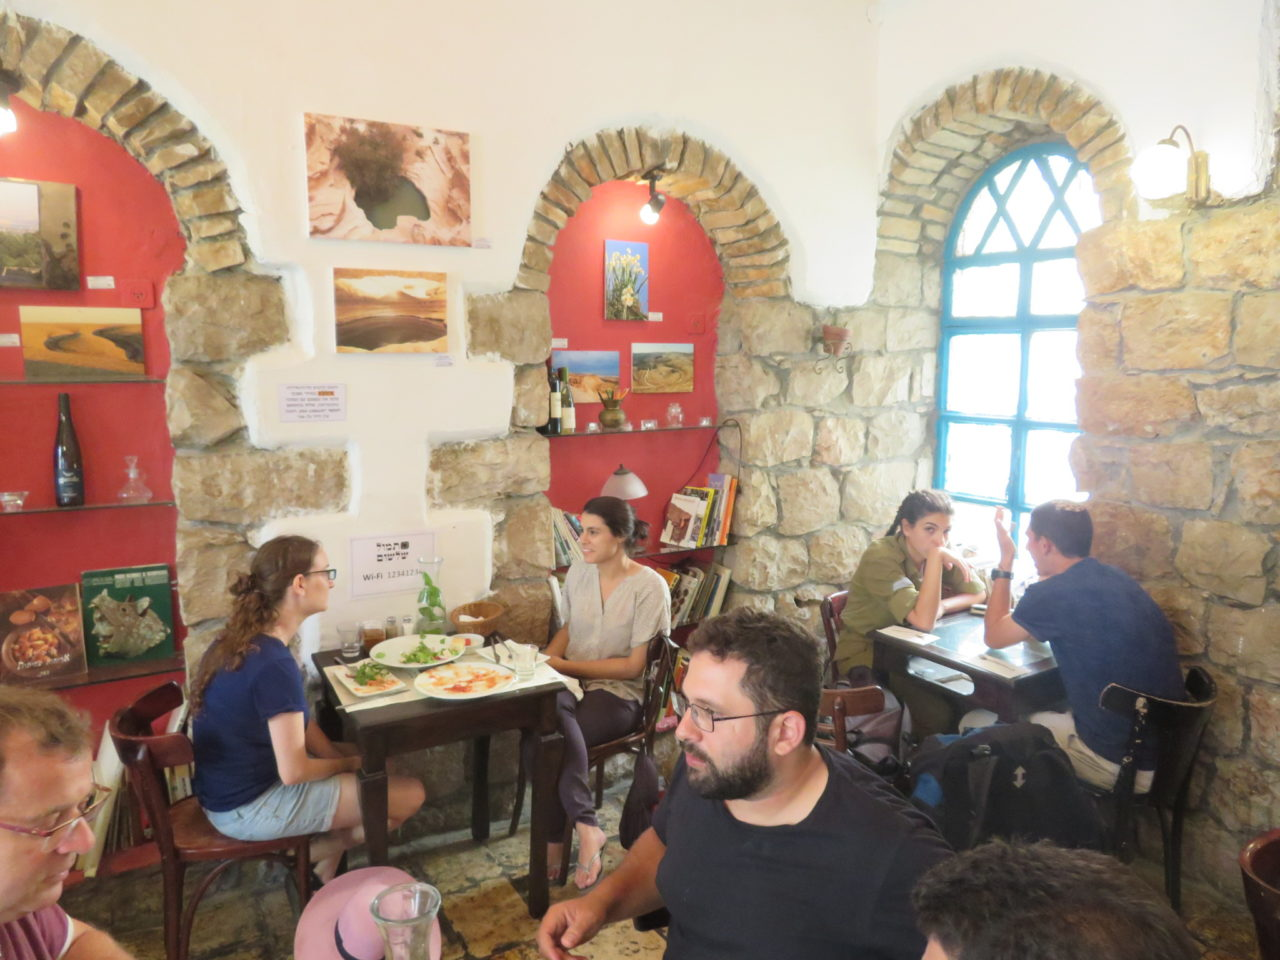 The joys of walking Jerusalem - A corner of the Tmol Shilshom literary cafe and restaurant